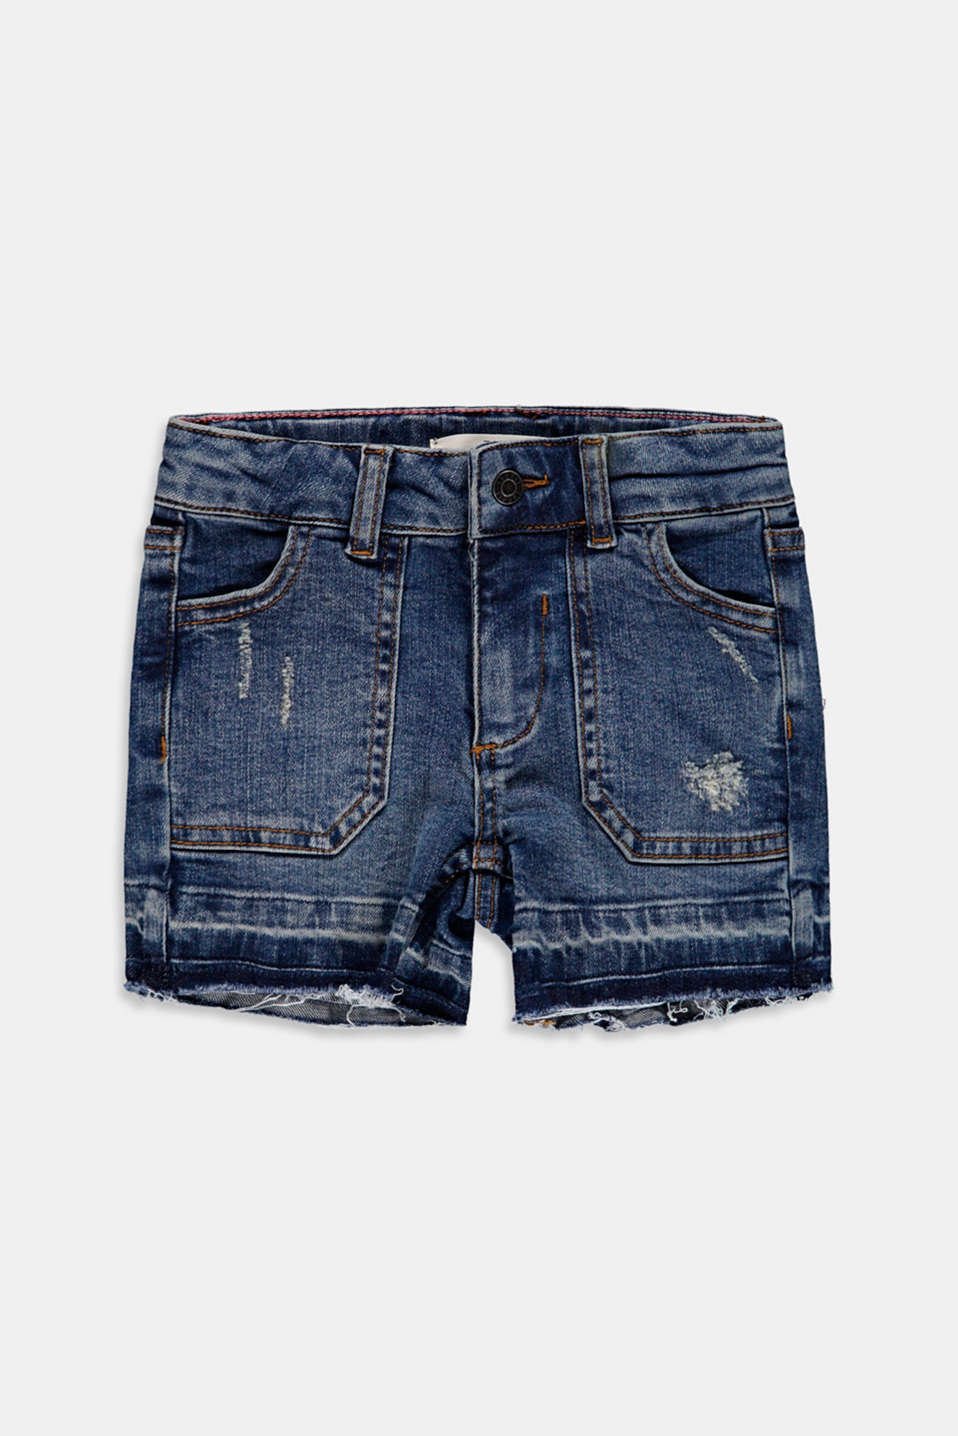 Esprit - Denim Shorts